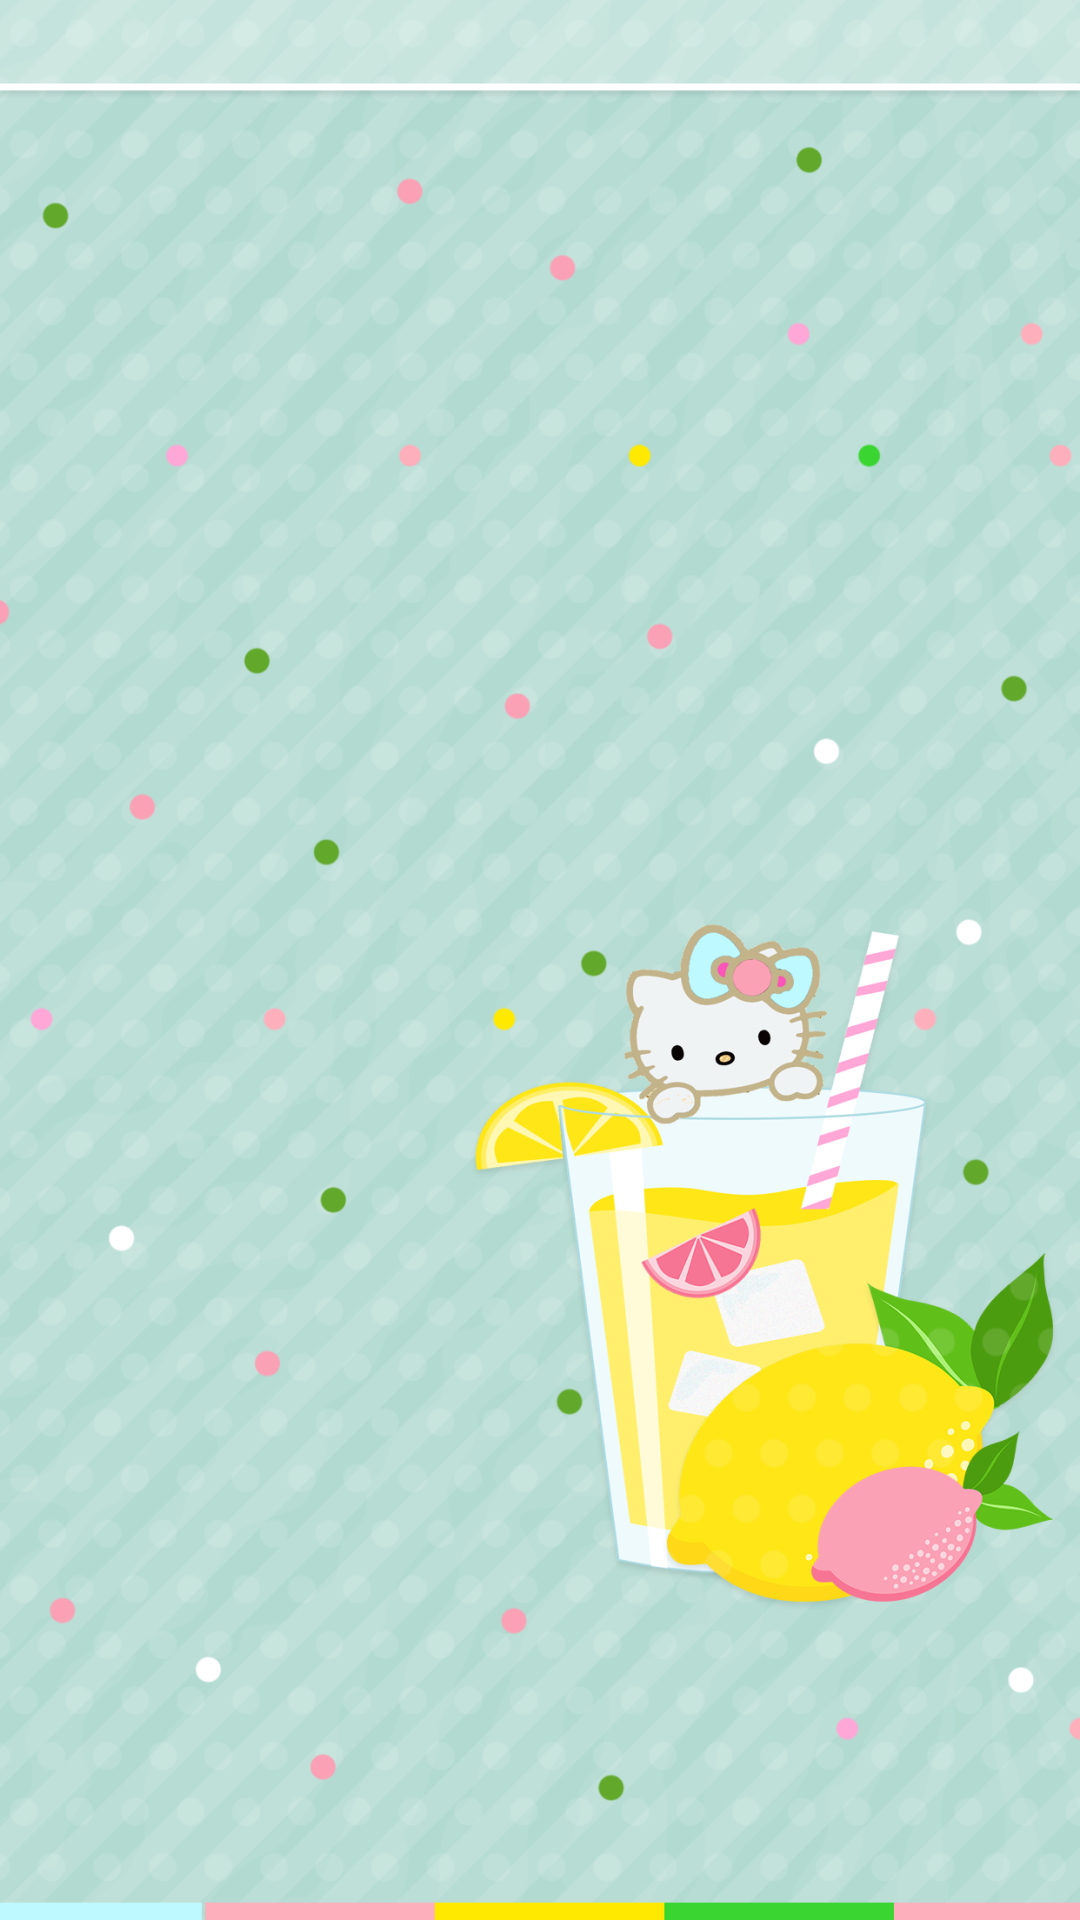 Summer Hd Wallpaper Android In 2020 Hello Kitty Wallpaper Kitty Wallpaper Android Wallpaper